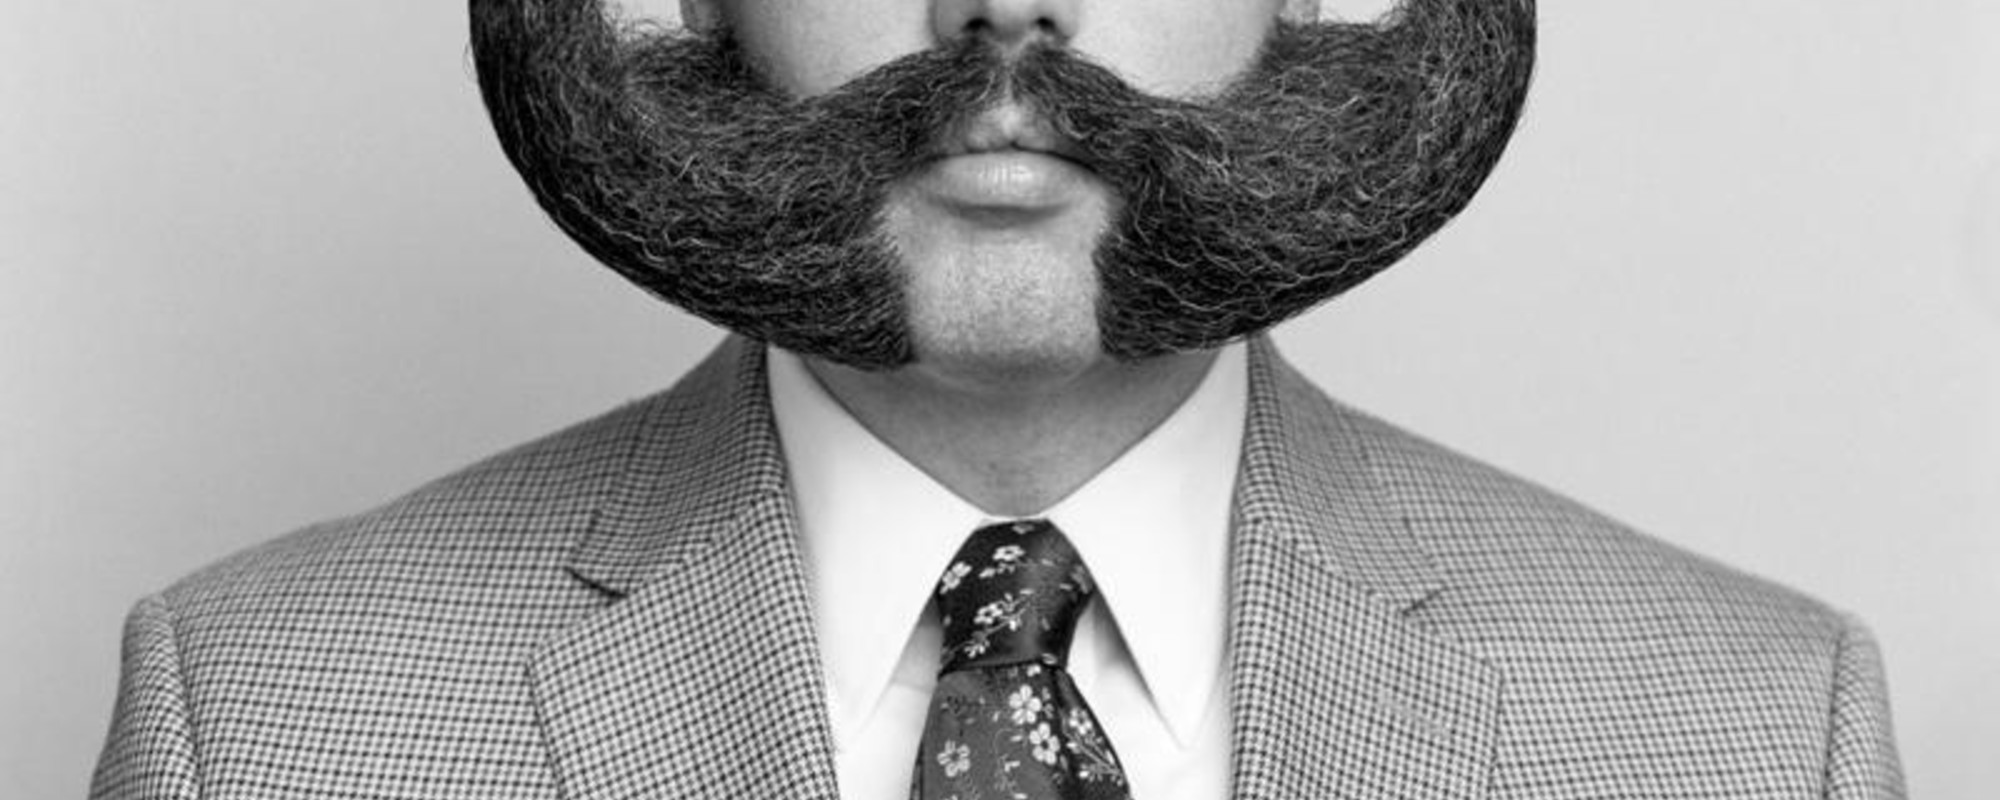 Borstelige portretten van de World Beard and Moustache Championships